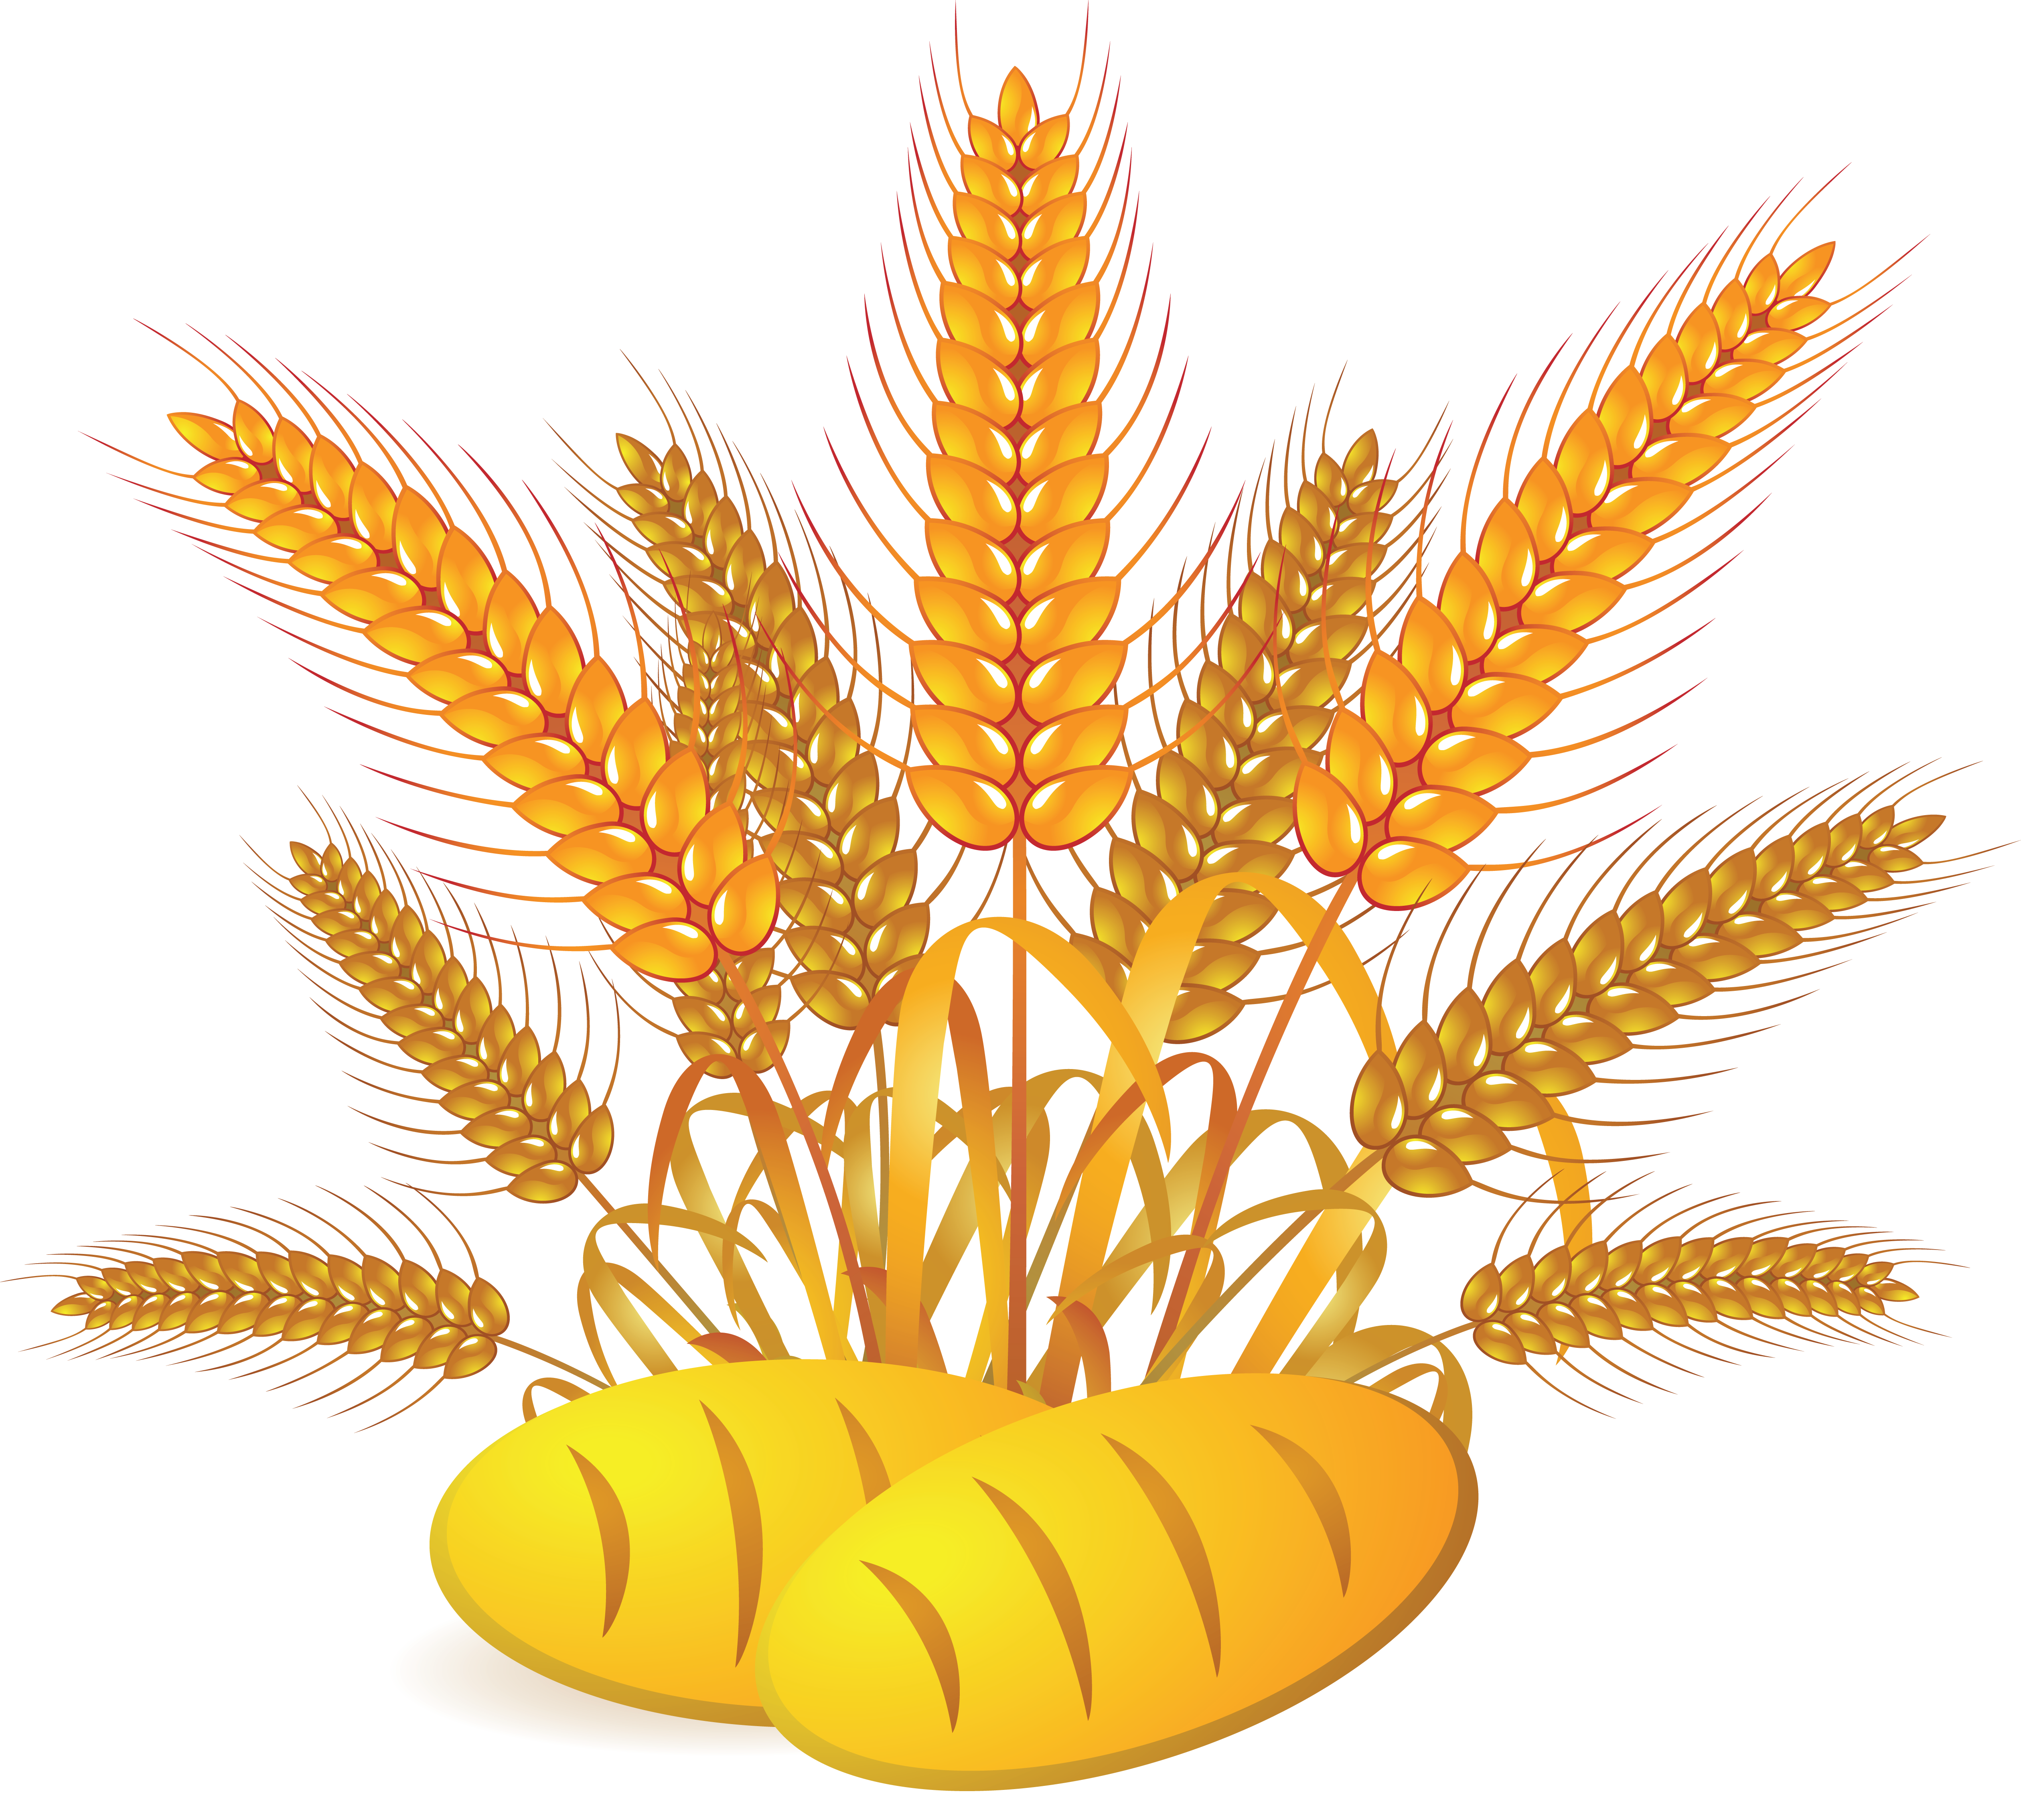 Wheat clipart wheat plant. Png images free download